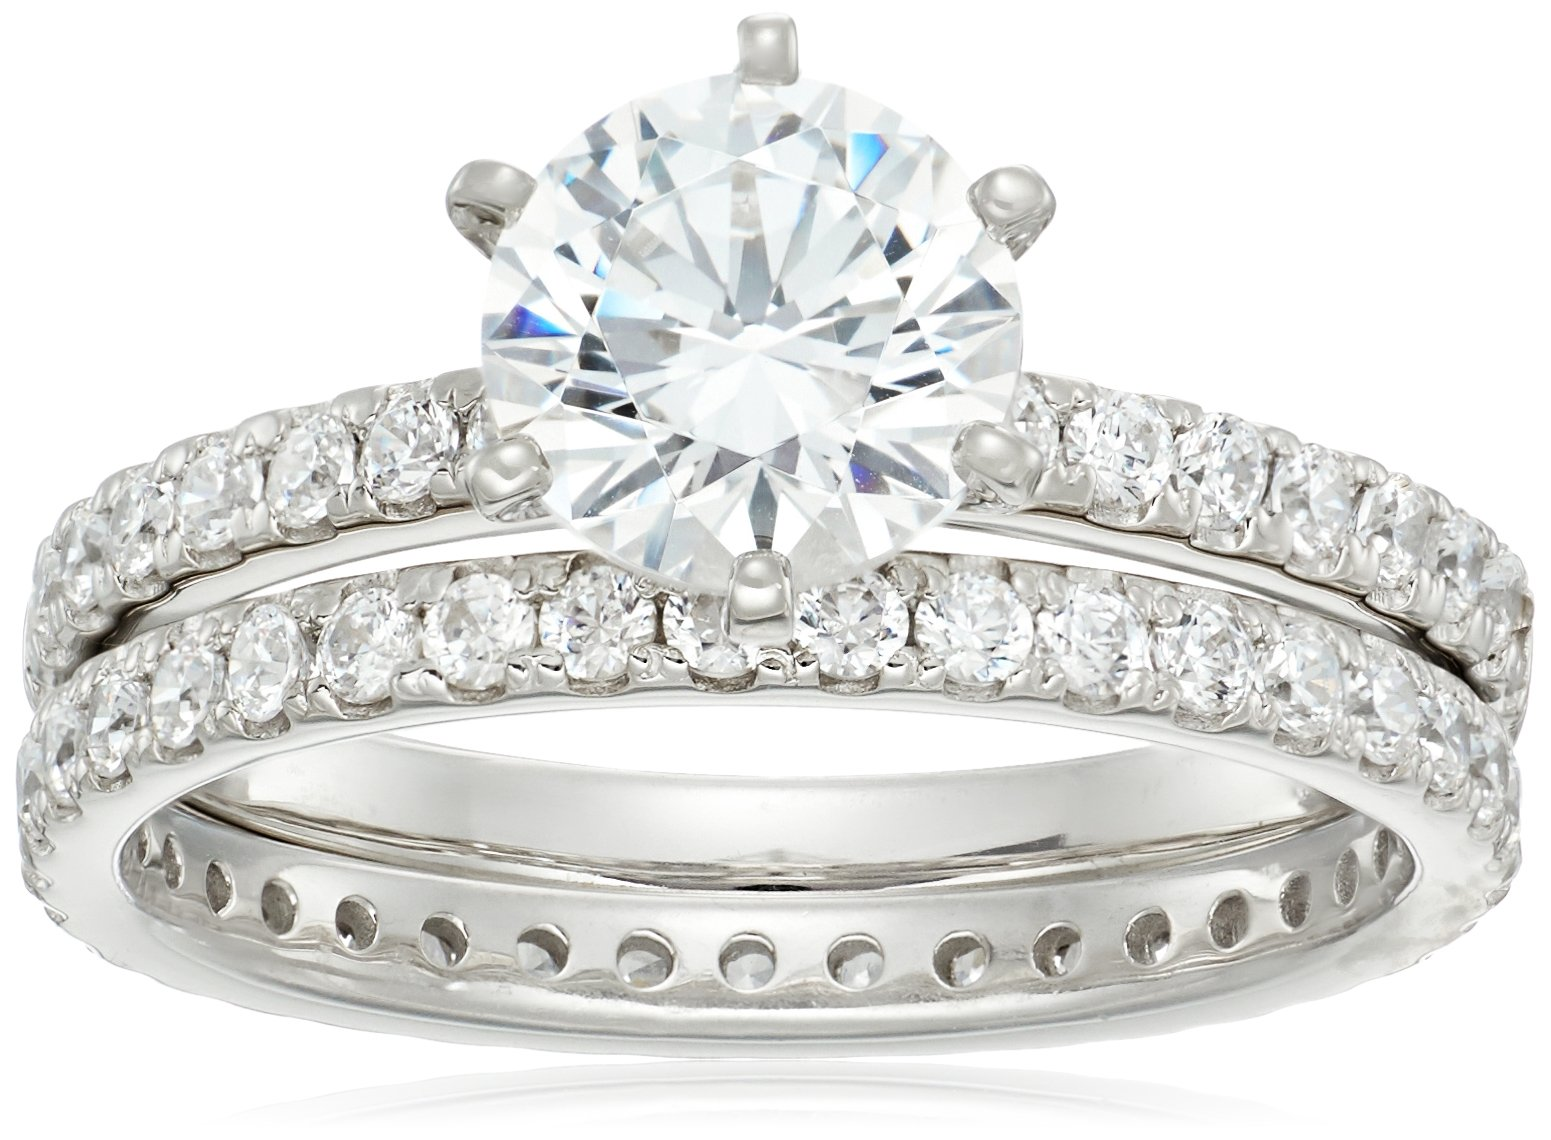 Platinum-Plated Sterling Silver Round Ring Set made with Swarovski Zirconia (1 Carat Center Stone), Size 7 by Amazon Collection